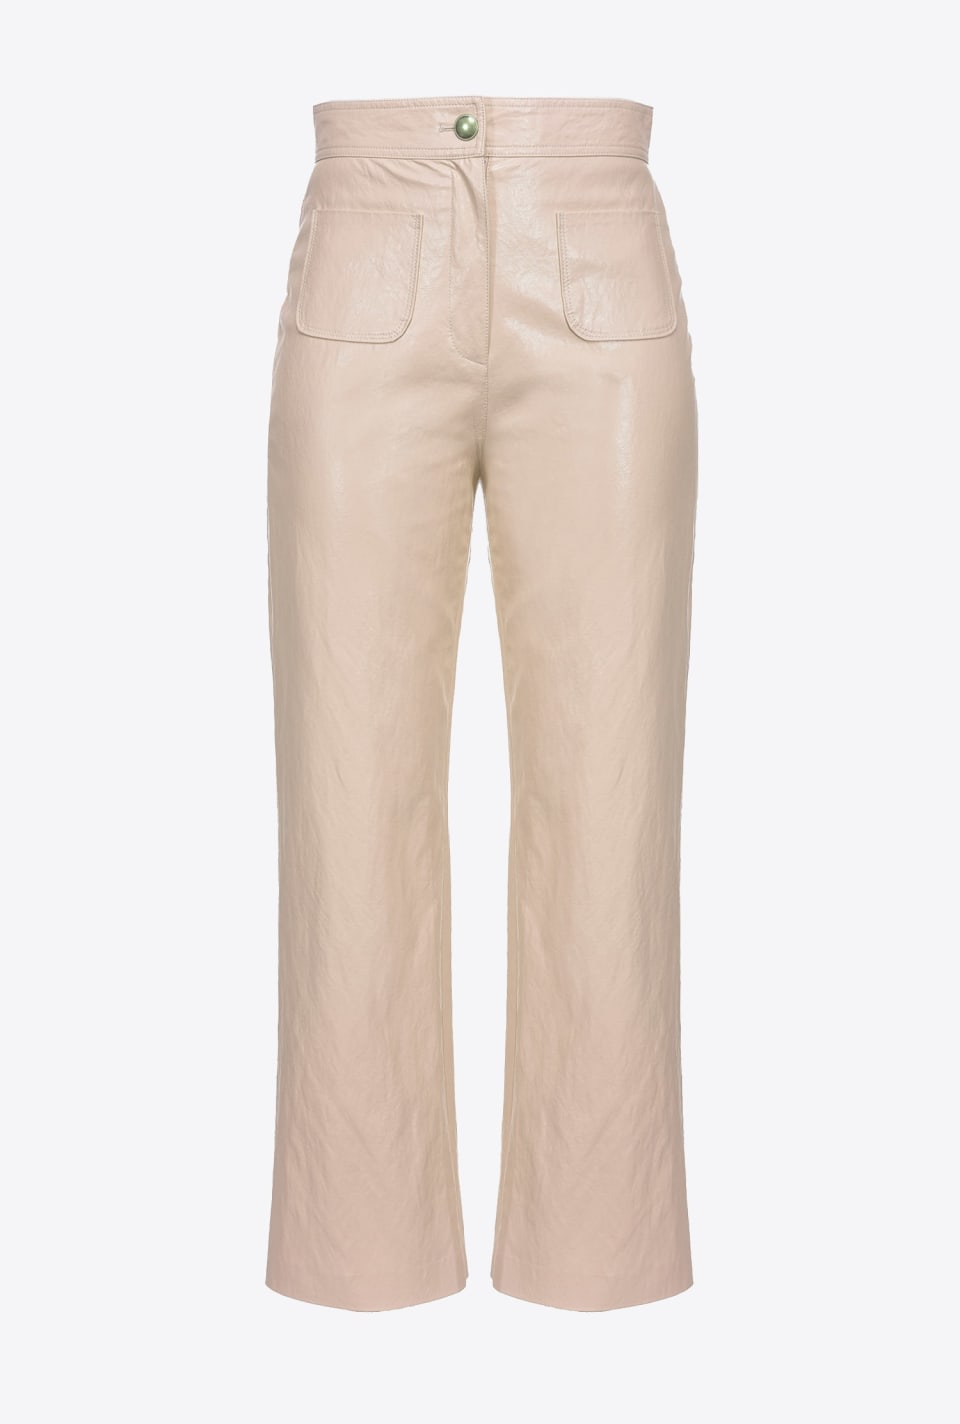 Washed leather-look trousers - Pinko